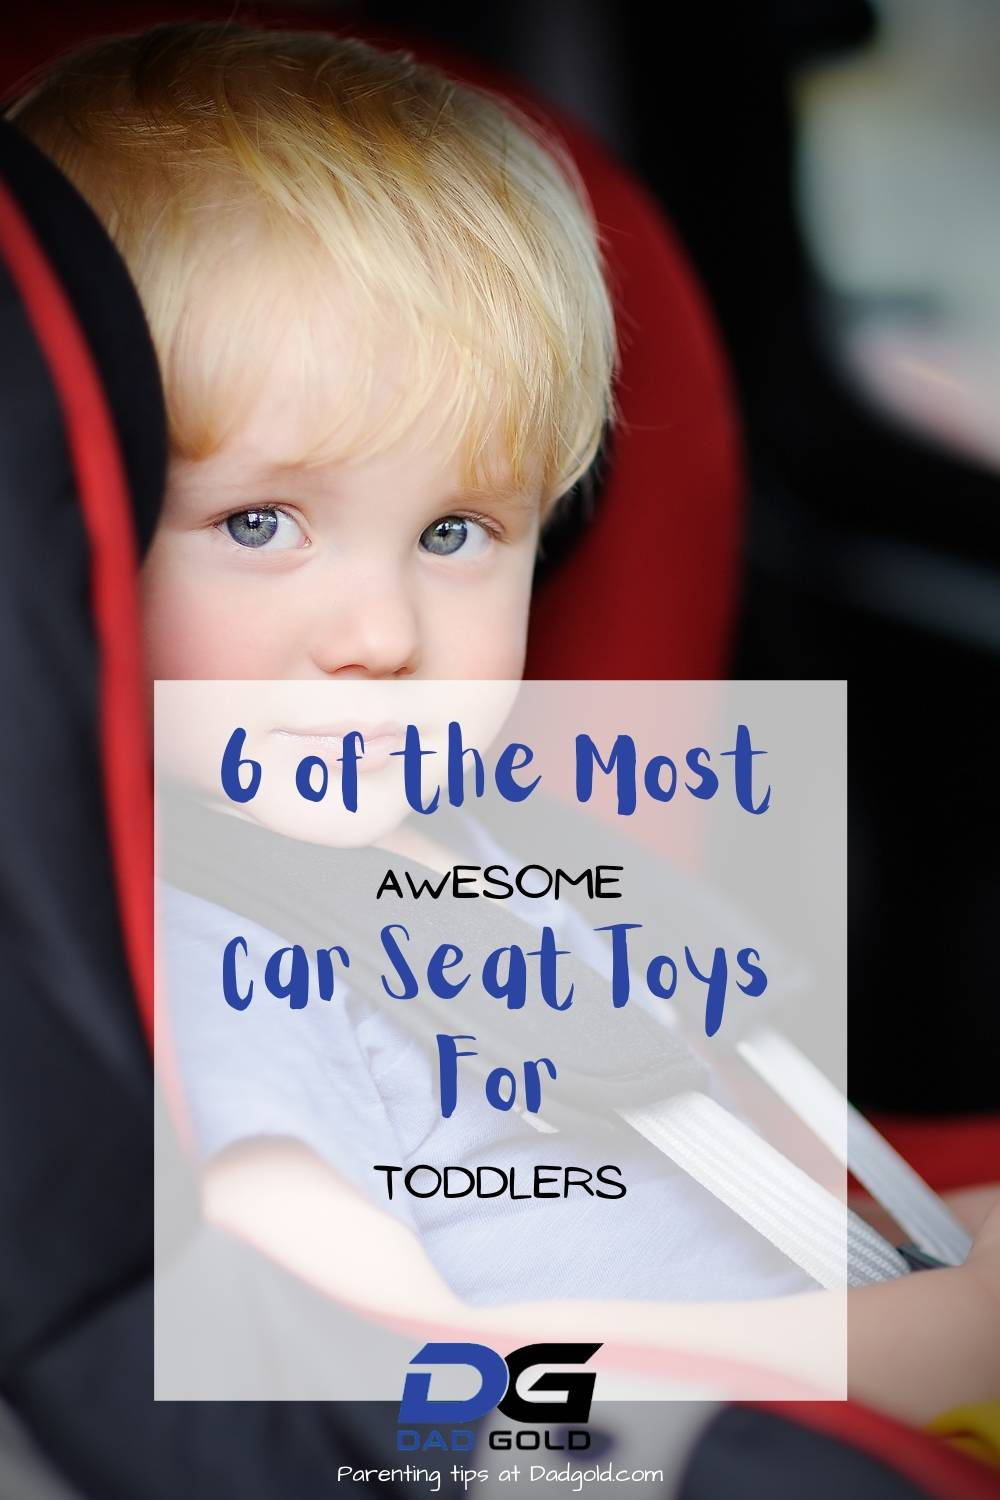 Awesome Car Seat Toys For Toddlers